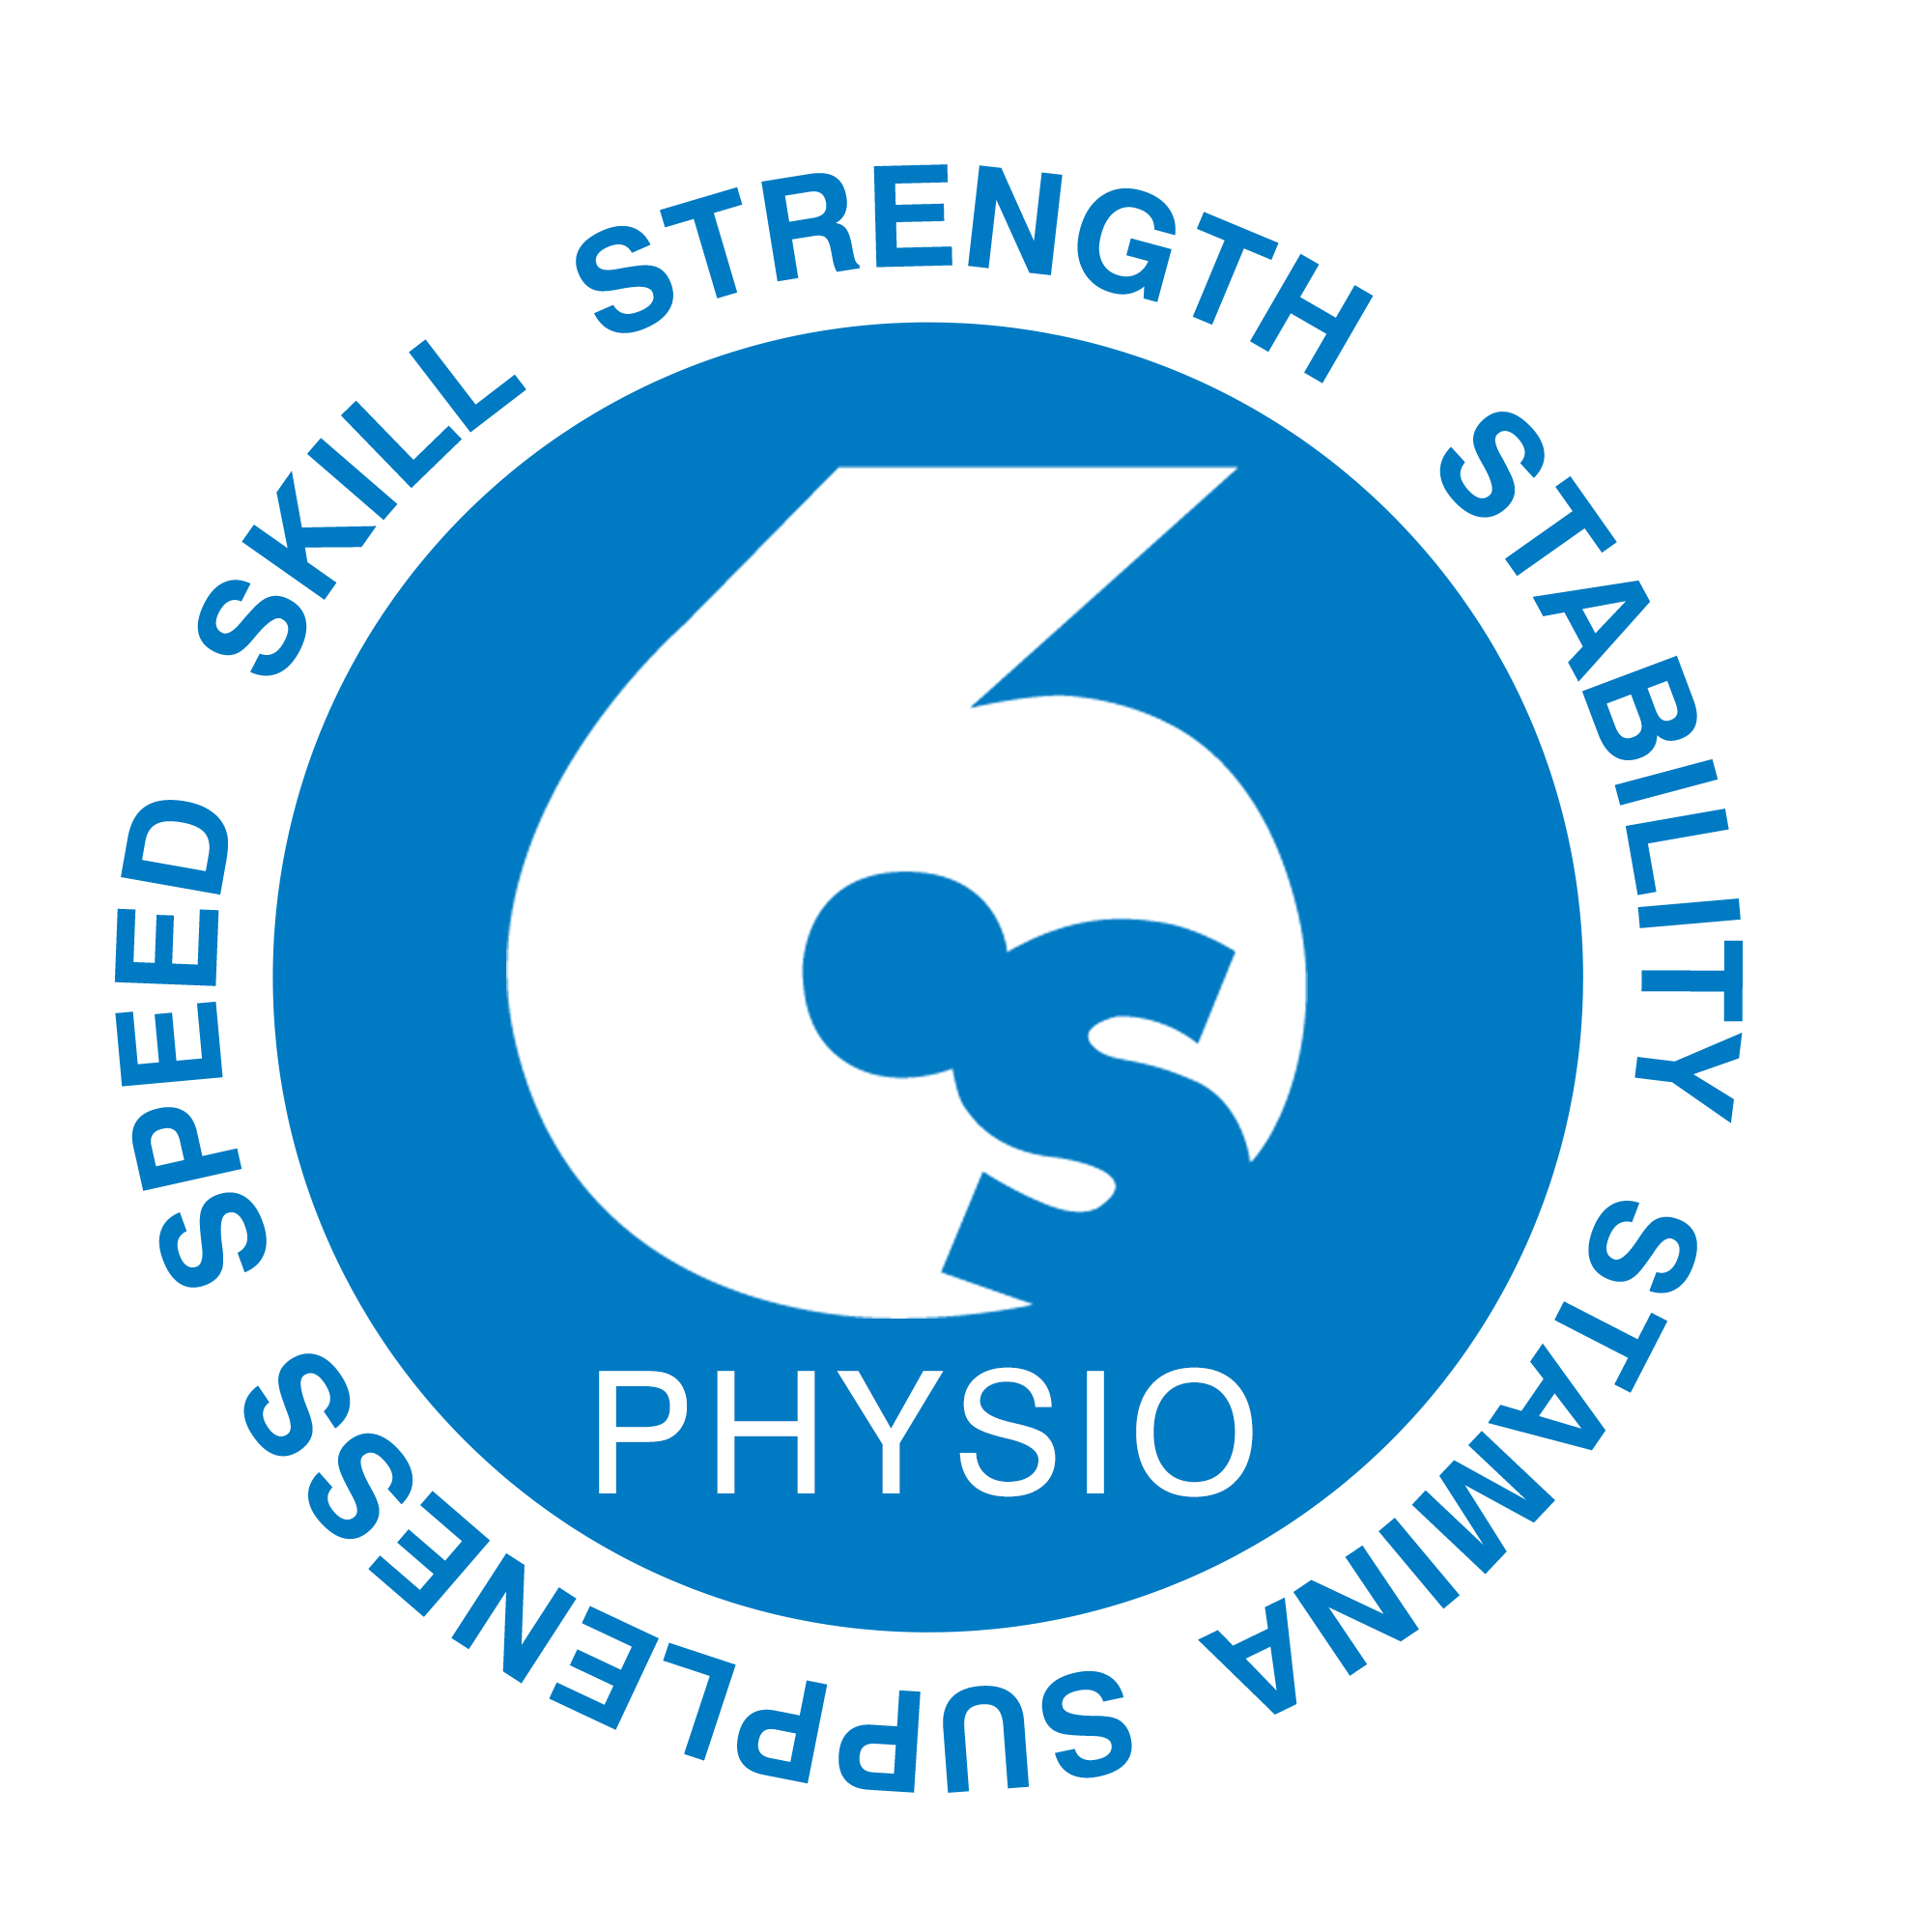 6S PHYSIO Ettalong Beach